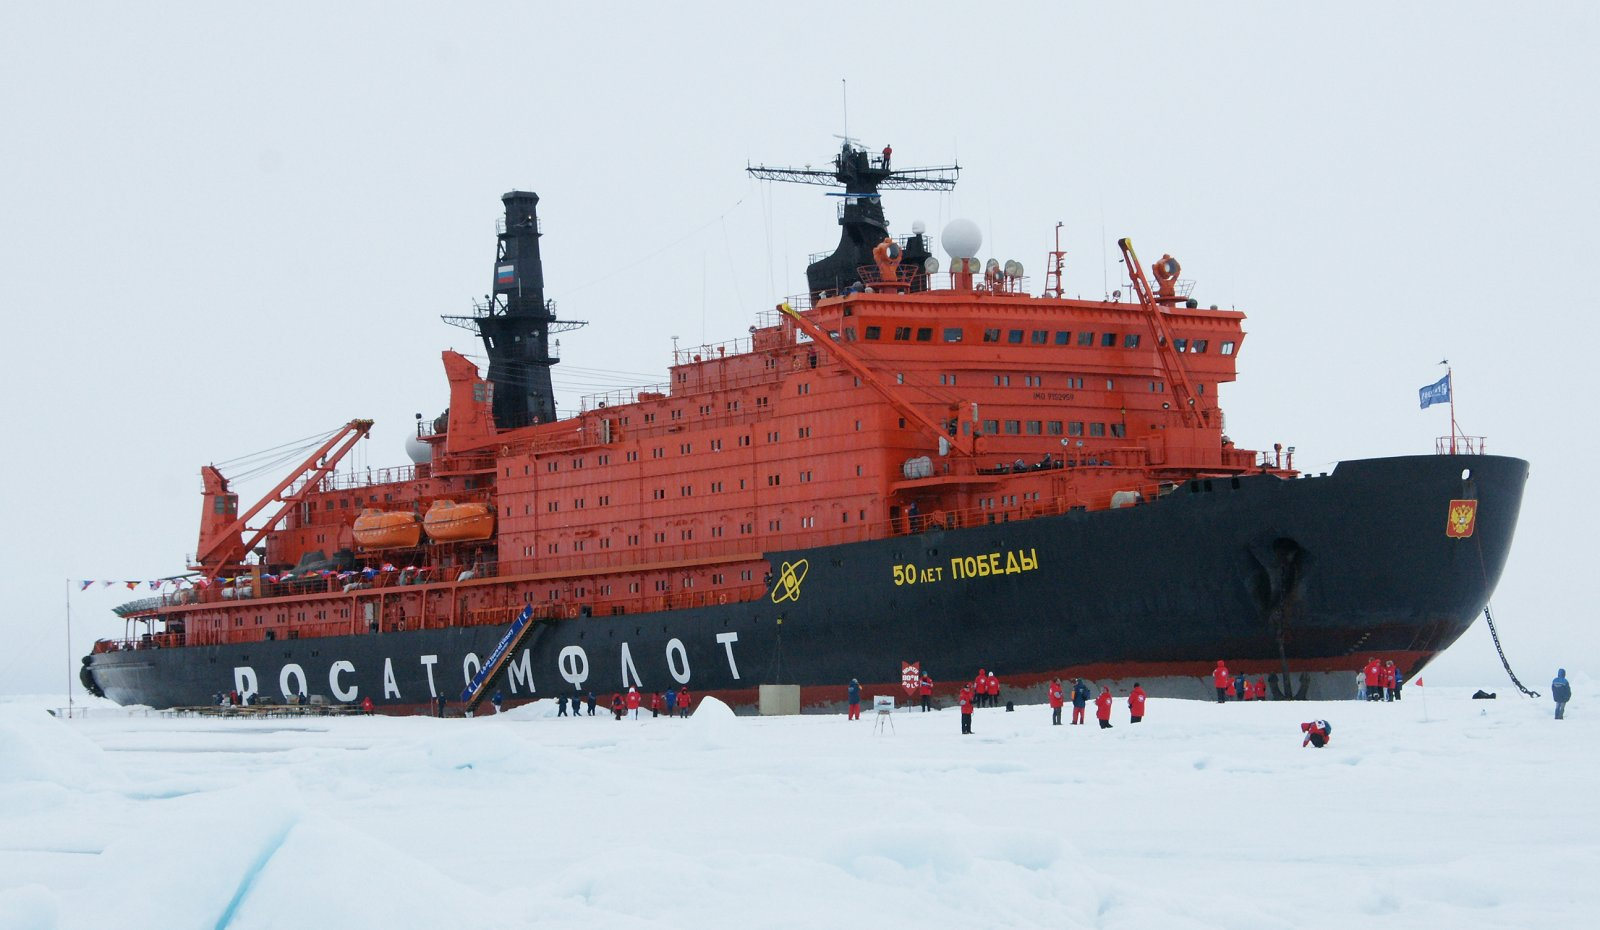 Russian icenreakers 50 let Pobedy' (Russia) on North 88° in 2012. (CC via Wikimedia Commons)